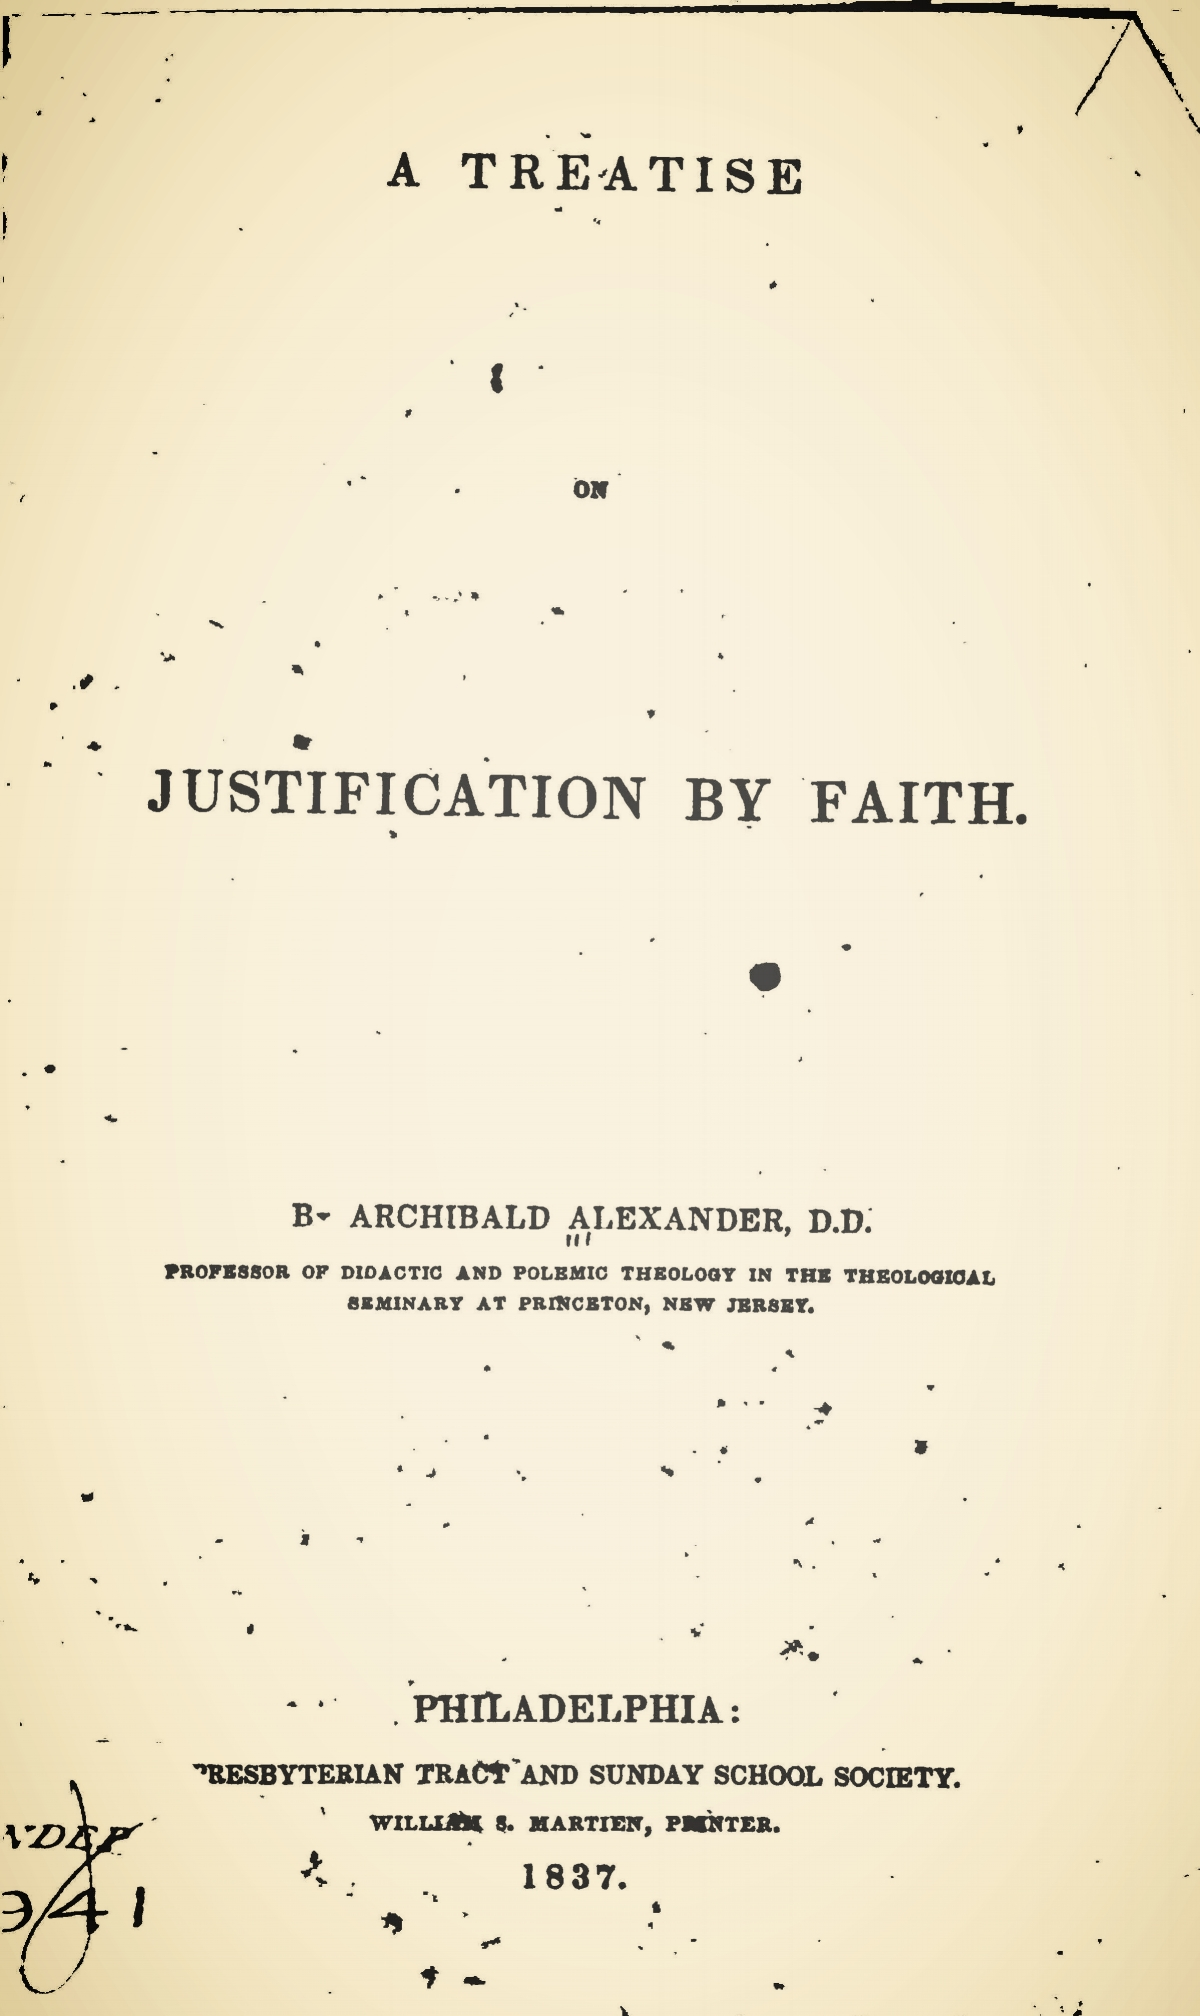 Alexander, Archibald, A Treatise on Justification By Faith Title Page.jpg